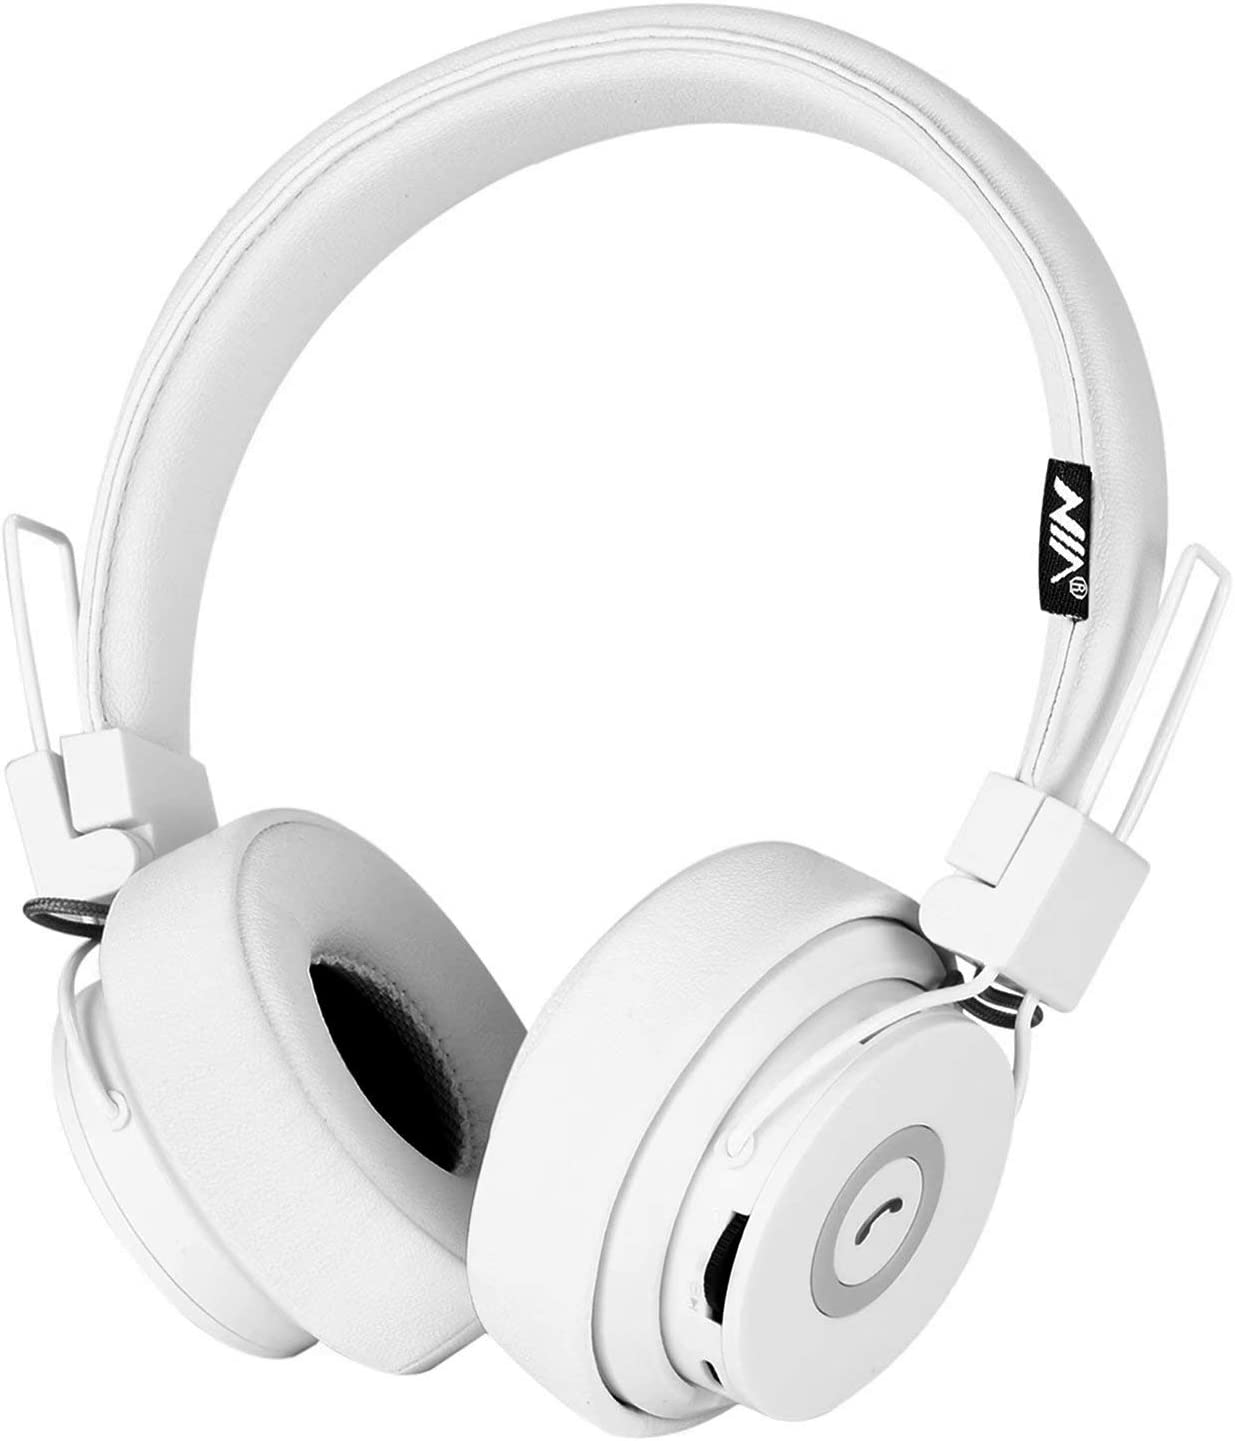 Bluetooth Headphones On Ear, Hi-Fi Stereo Foldable Over-Ear Headset with Microphone, APP to Control Headphones, Soft Earmuffs Support SD Card FM Radio Wired and Wireless Headset for Kids Adults, White